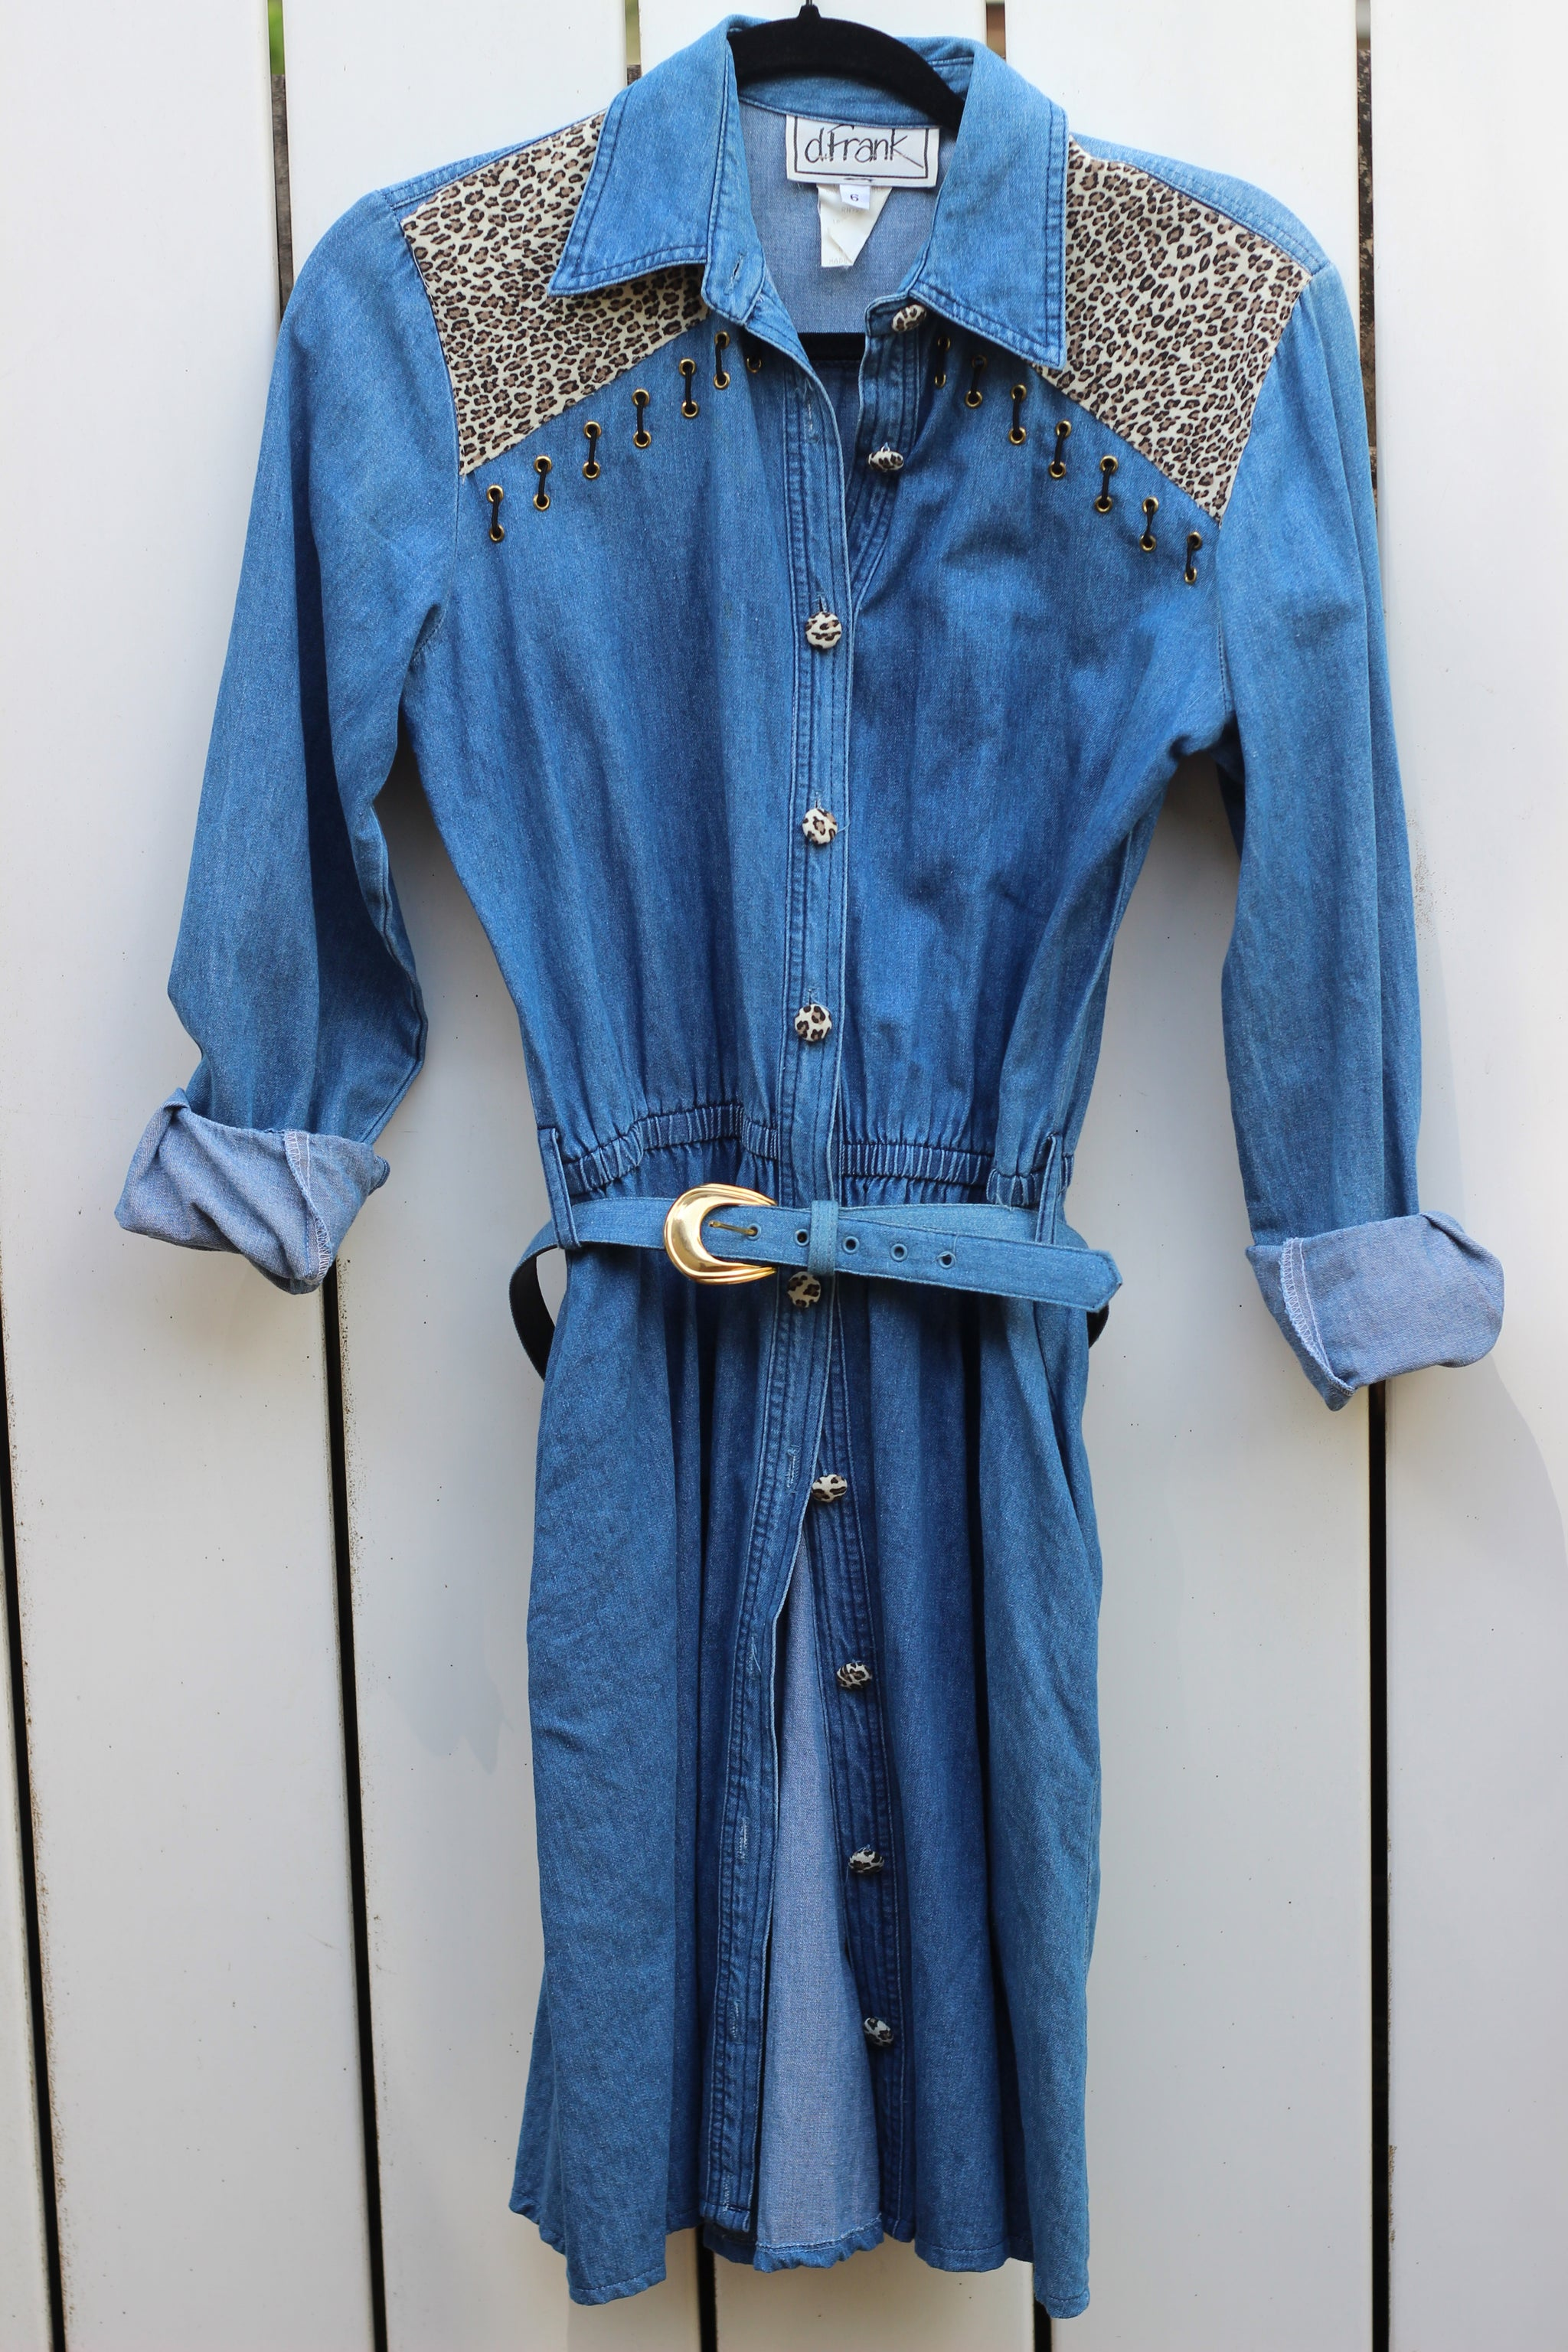 Vintage Denim & Leopard Button Up Dress (XS/S)